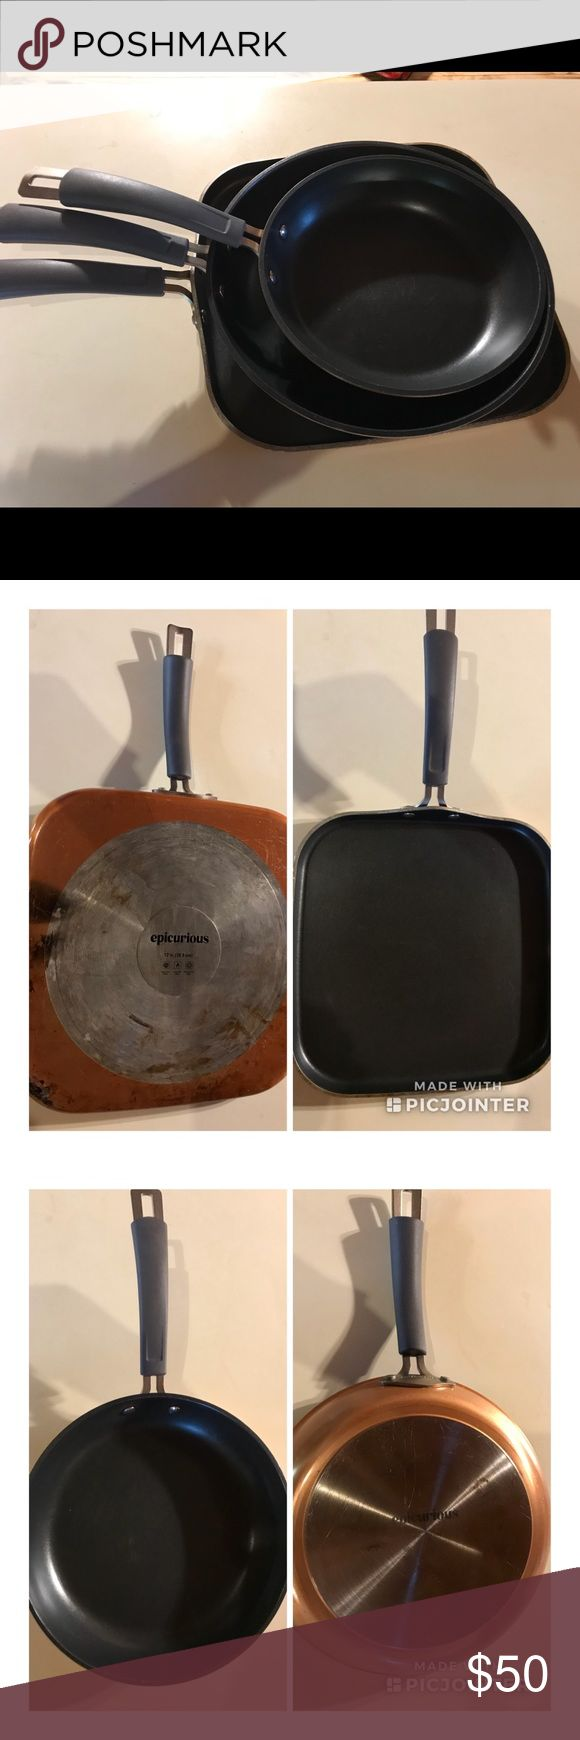 """3 piece Epicurious cookware set Gently used non-stick cookware. I got a new complete set for Christmas so I don't need these.   Epicurious Aluminum Nonstick 12"""" Square Griddle. Metal utensil safe nonstick interior. Excluding induction Oven safe up to 350º F. Dishwasher safe Measures 21"""" L x 12"""" W x 1"""" H    Epicurious Aluminum Nonstick 2-Piece Fry Pan Set Suitable for use on all stove types, including induction.  Oven safe up to 350º F Includes: 9"""" open fry pan, 11"""" open fry pan Epicurious…"""